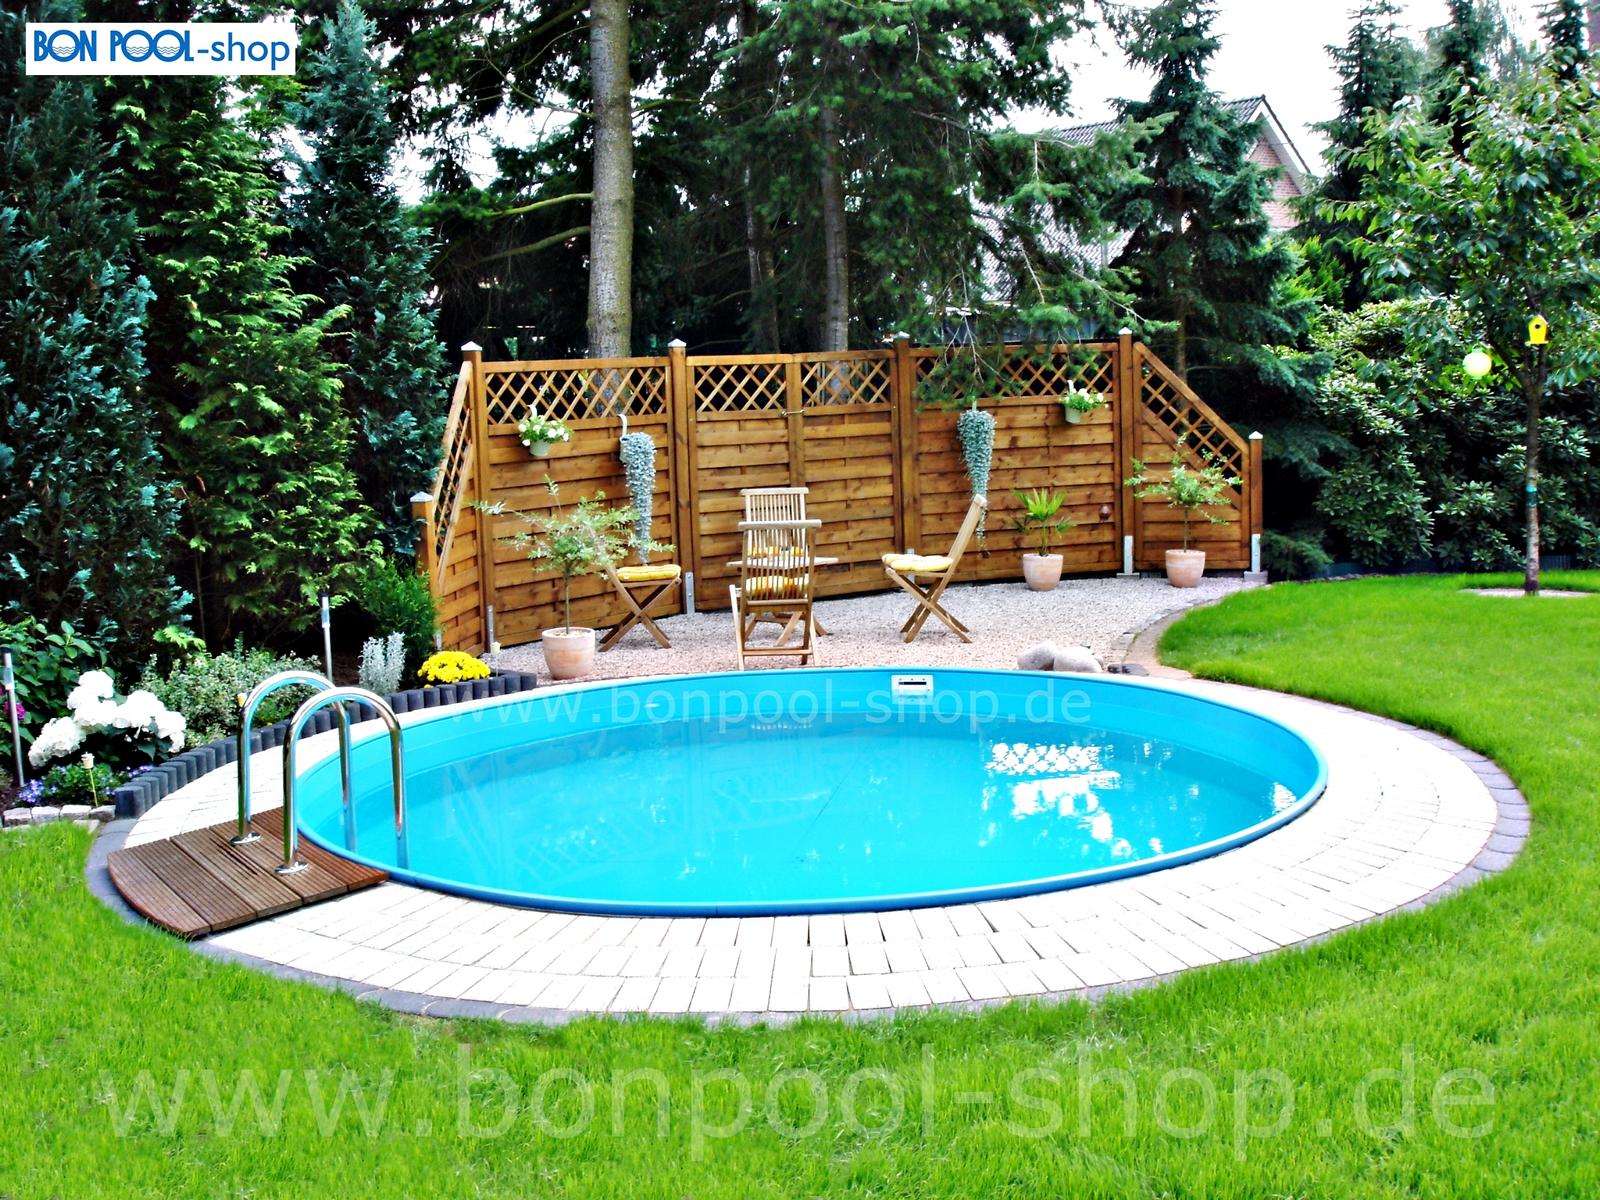 Pool Garten Tiefe Rundbecken Set Ø 300 Tiefe 120 Poolpaket Bon Pool